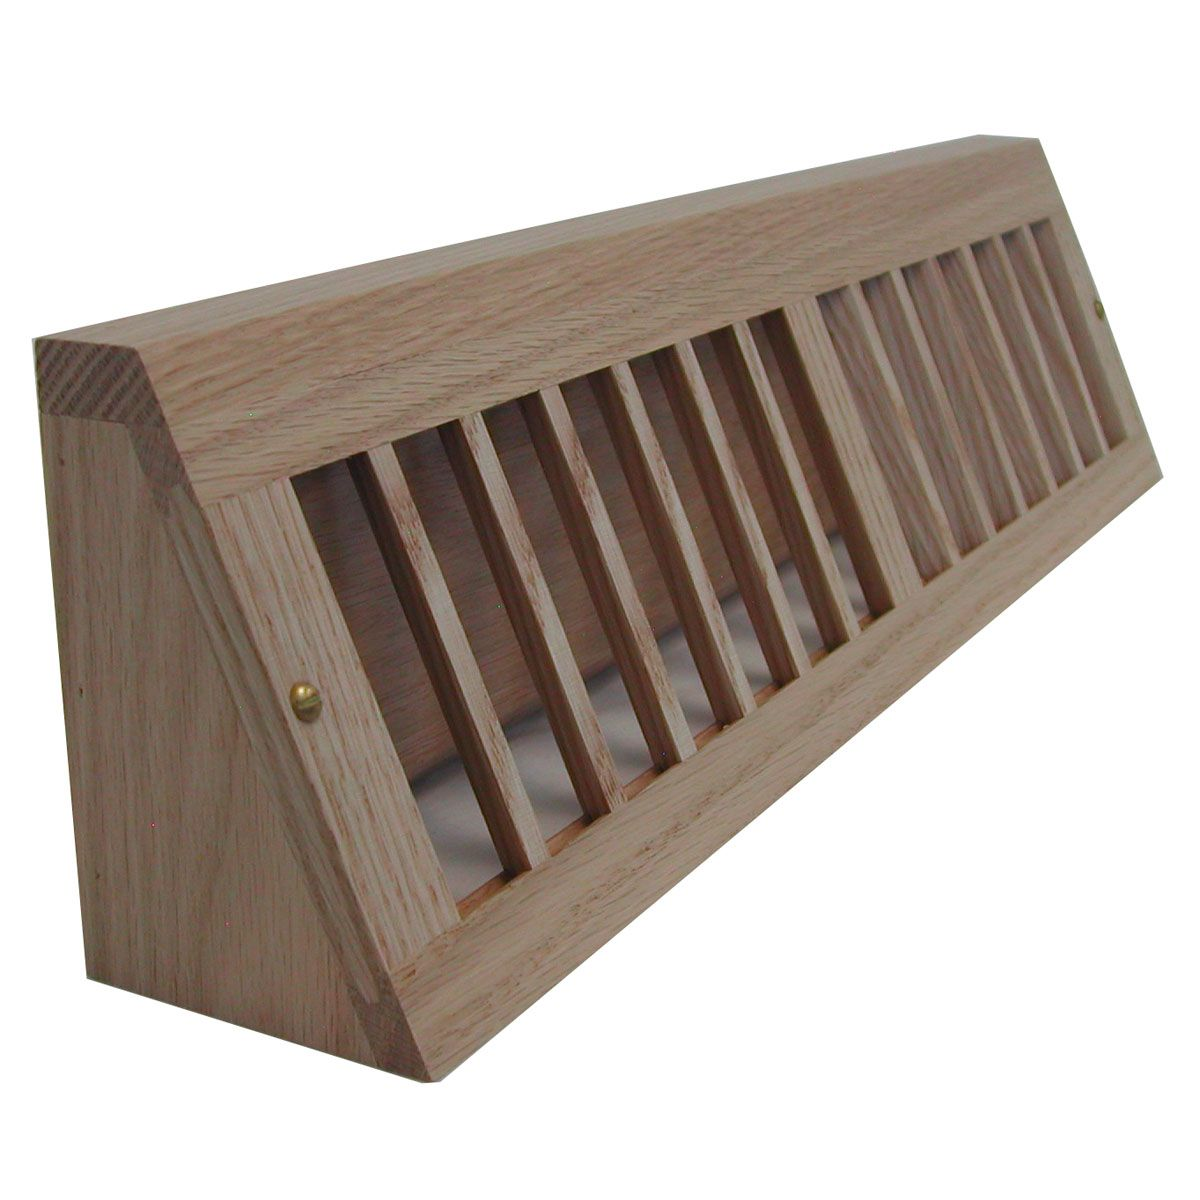 Wood Floor Vent Covers - Wood Floor Vent Covers Floor Vent Covers Pinterest Vent Covers